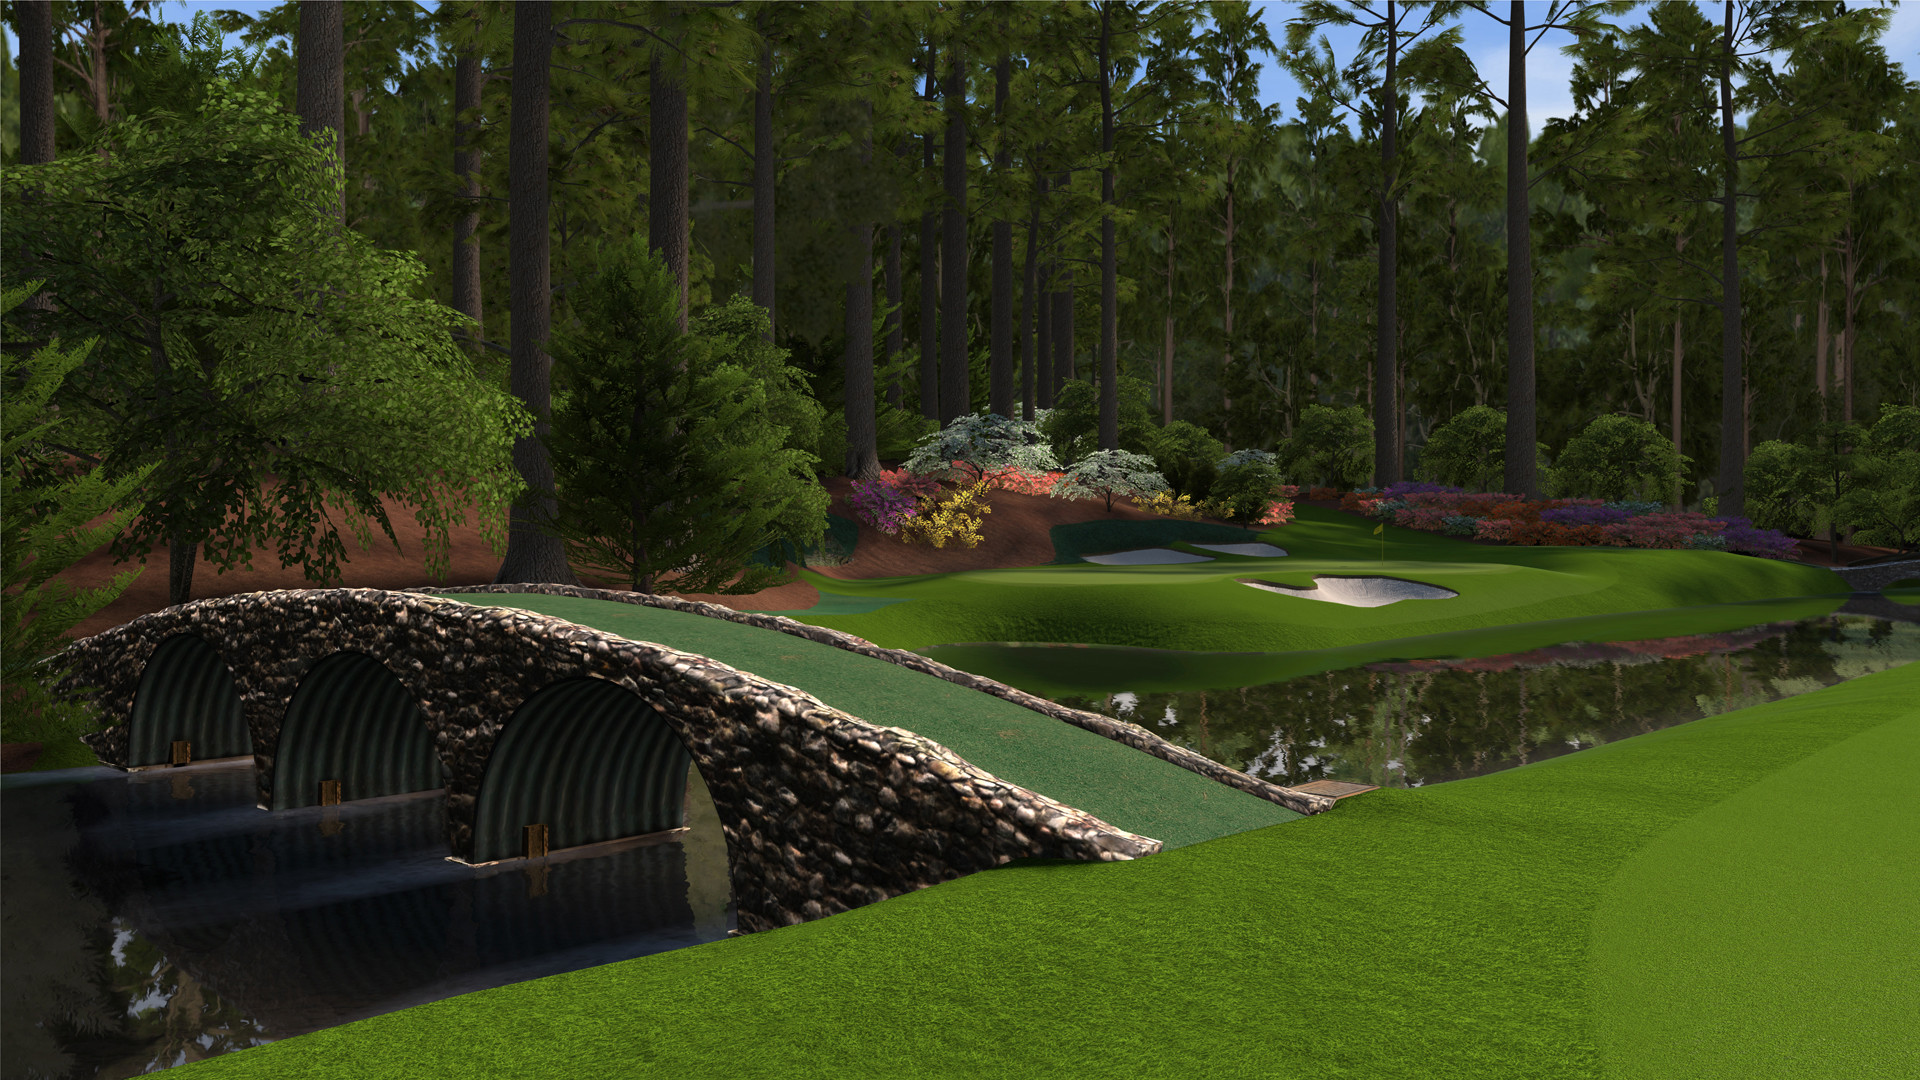 1920x1080 augusta hole 12 570x320 Review Tiger Woods PGA Tour 12 The Masters